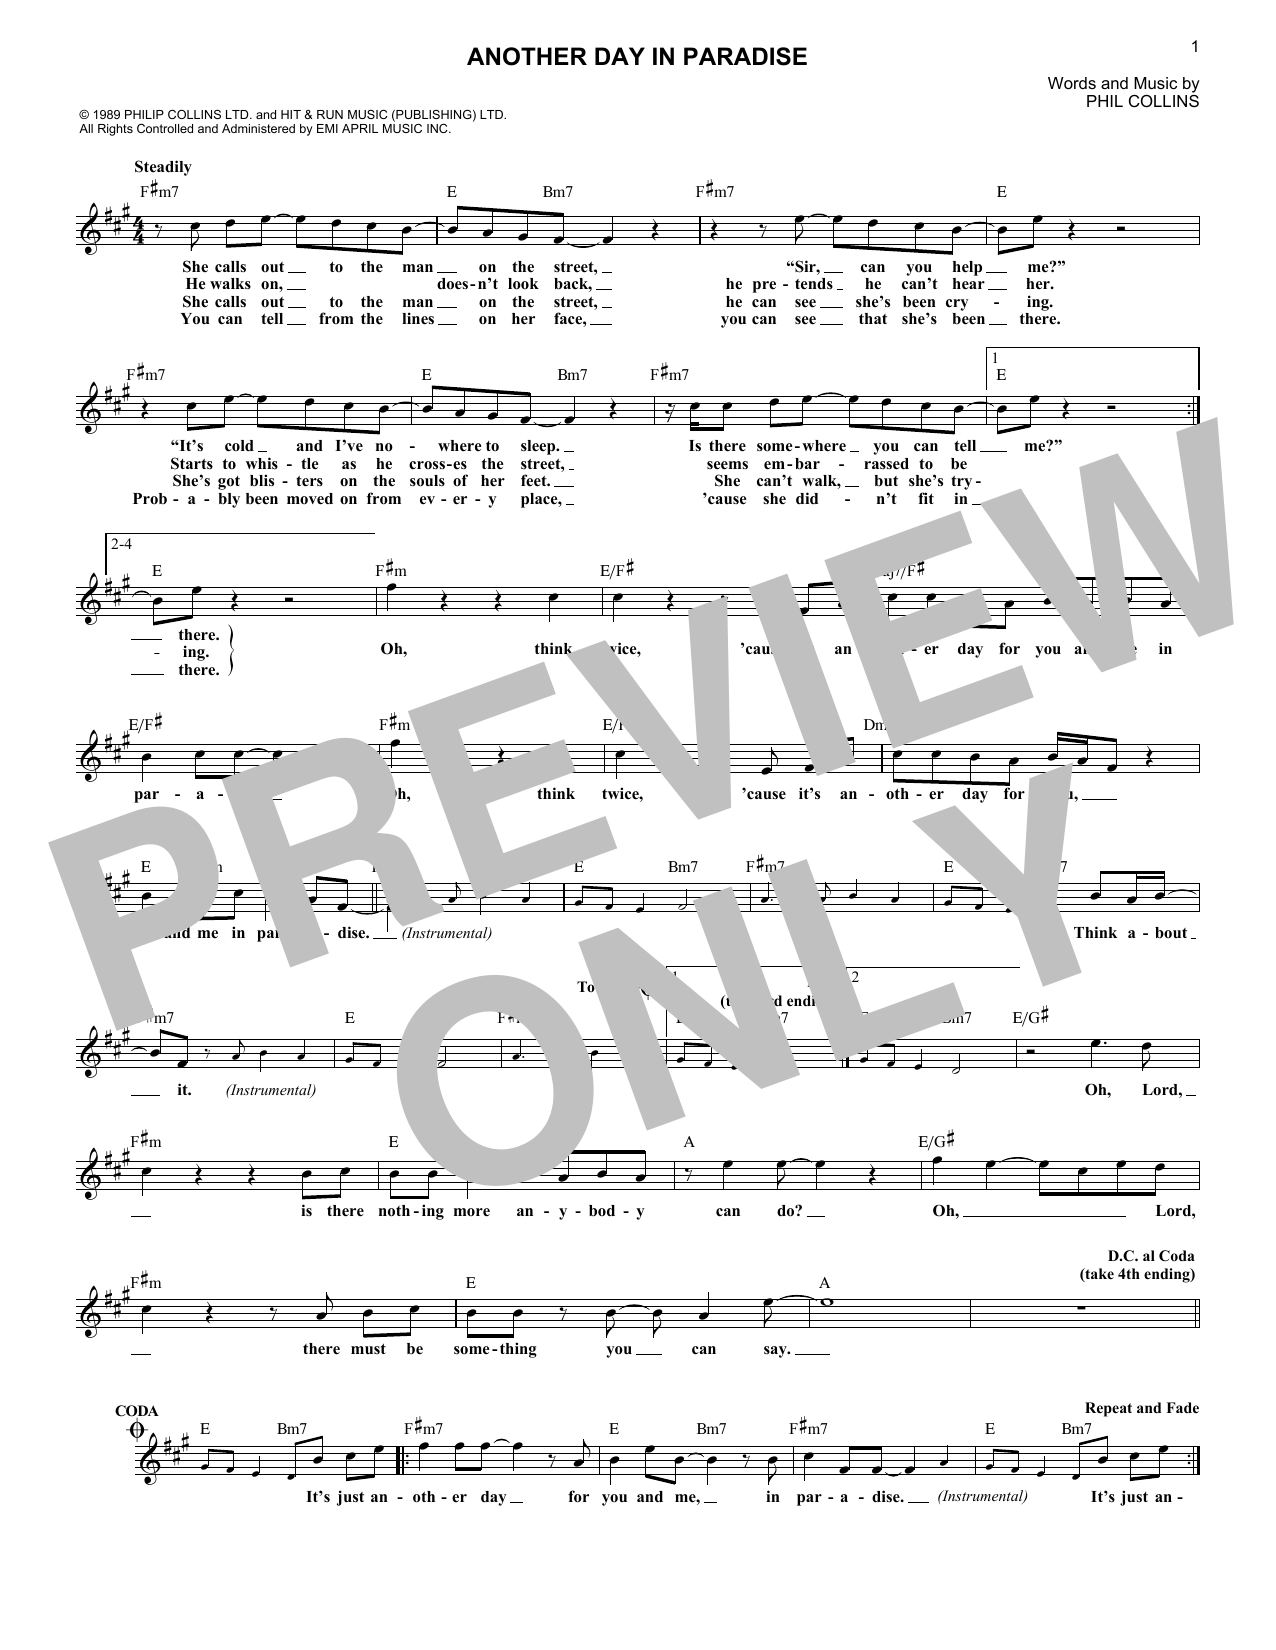 Phil Collins 'Another Day In Paradise' Sheet Music Notes, Chords | Download  Printable Melody Line, Lyrics & Chords - SKU: 180205